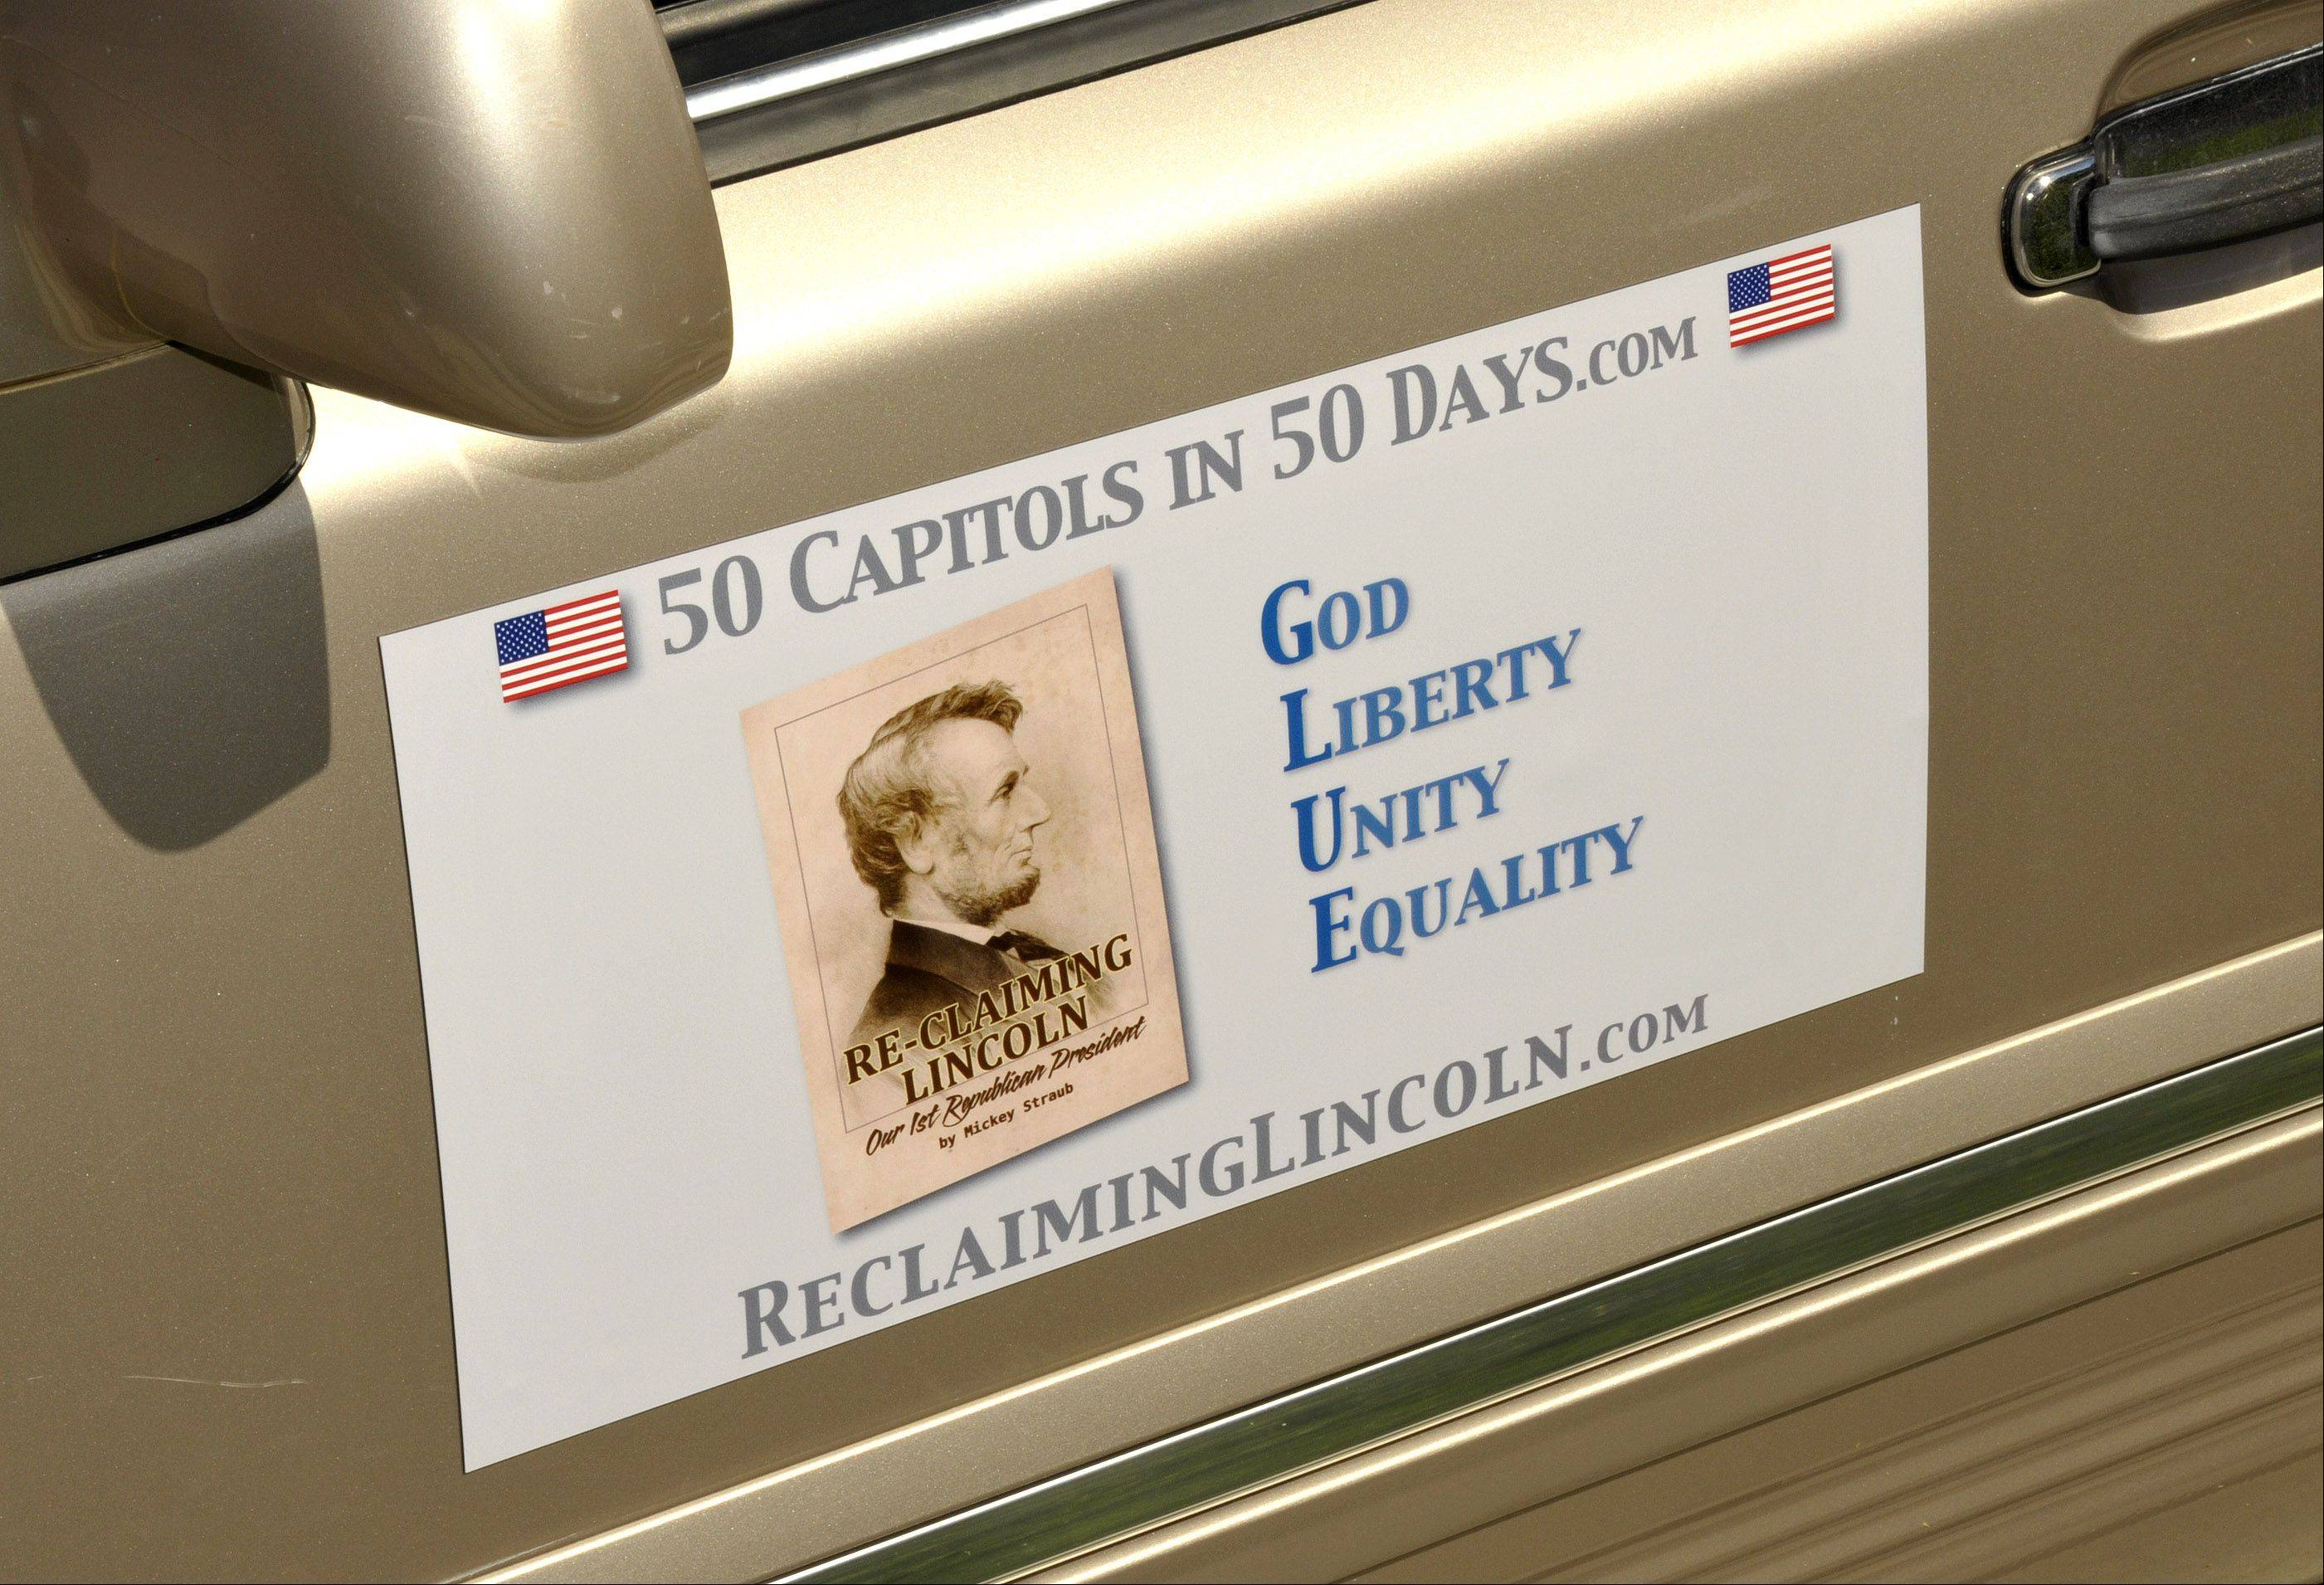 Business owner Mickey Straub is embarking on a 50-state tour to remind America of Abraham Lincoln's legacy. He'll be reading the Gettysburg Address on the steps of all 50 state capitols in 50 days.